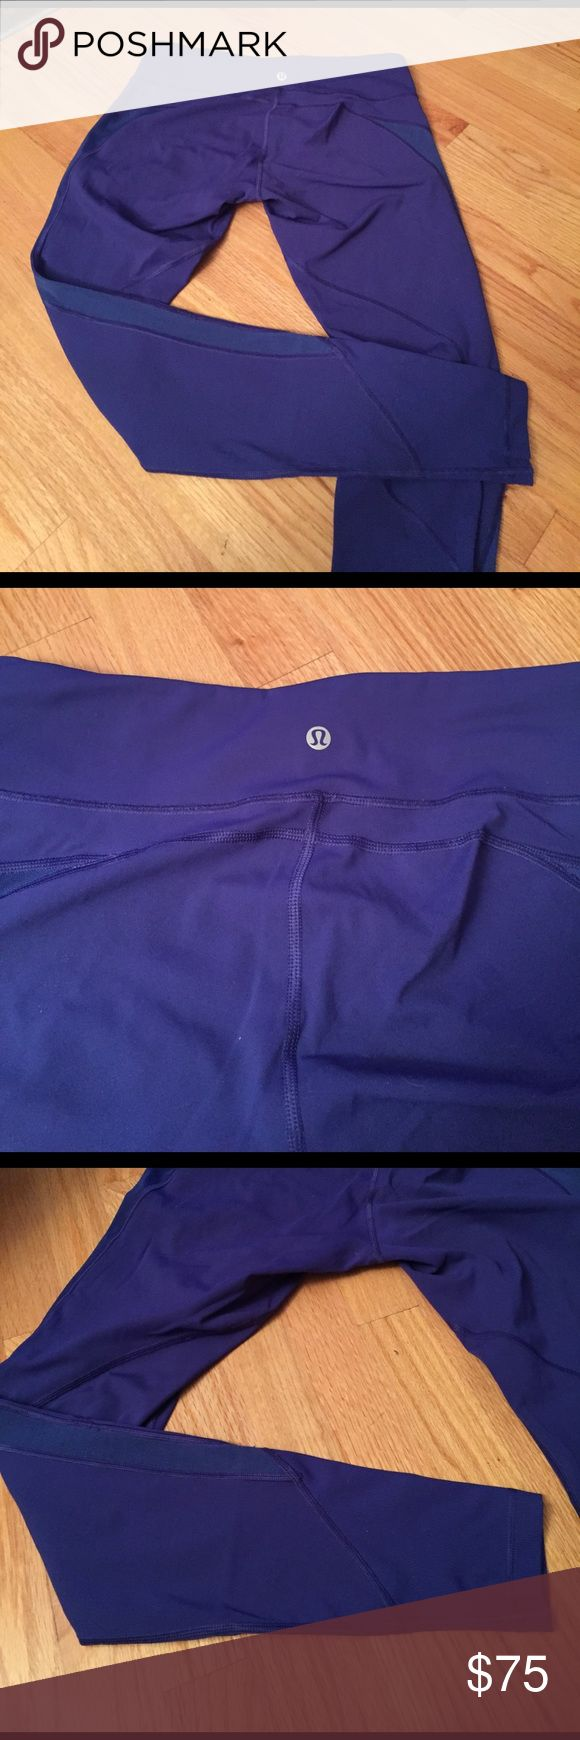 Blue ankle length yoga pants from Lululemon Blue ankle length yoga pants from lululemon lululemon athletica Pants Leggings